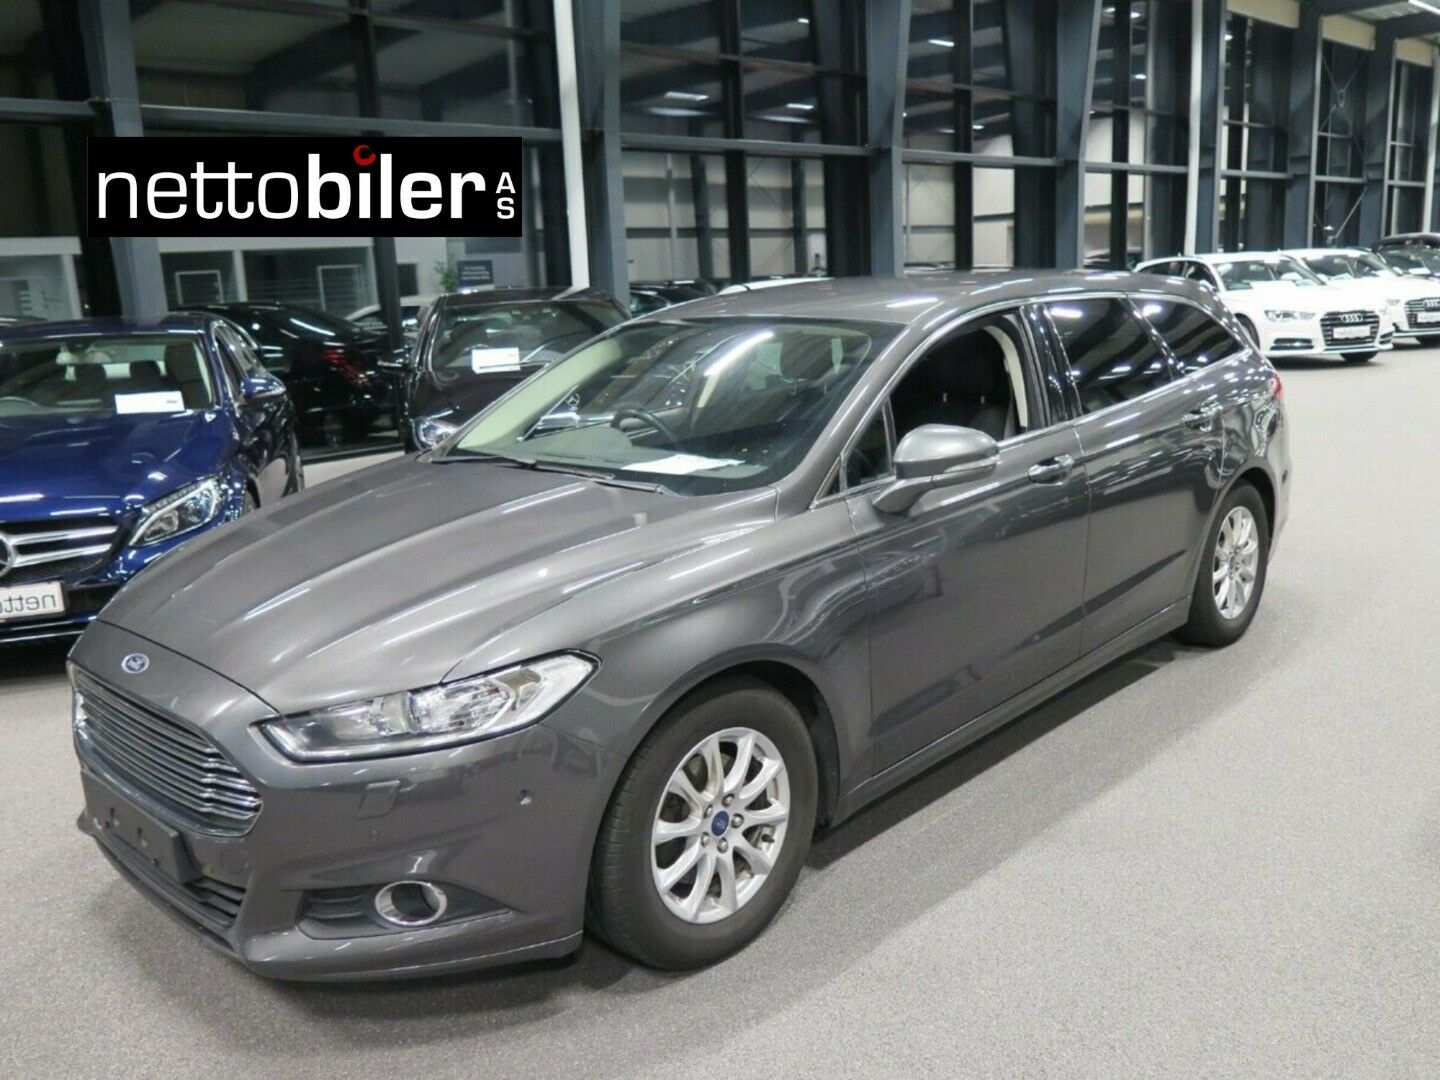 Ford Mondeo 2,0 TDCi 150 Trend stc. ECO 5d - 139.900 kr.